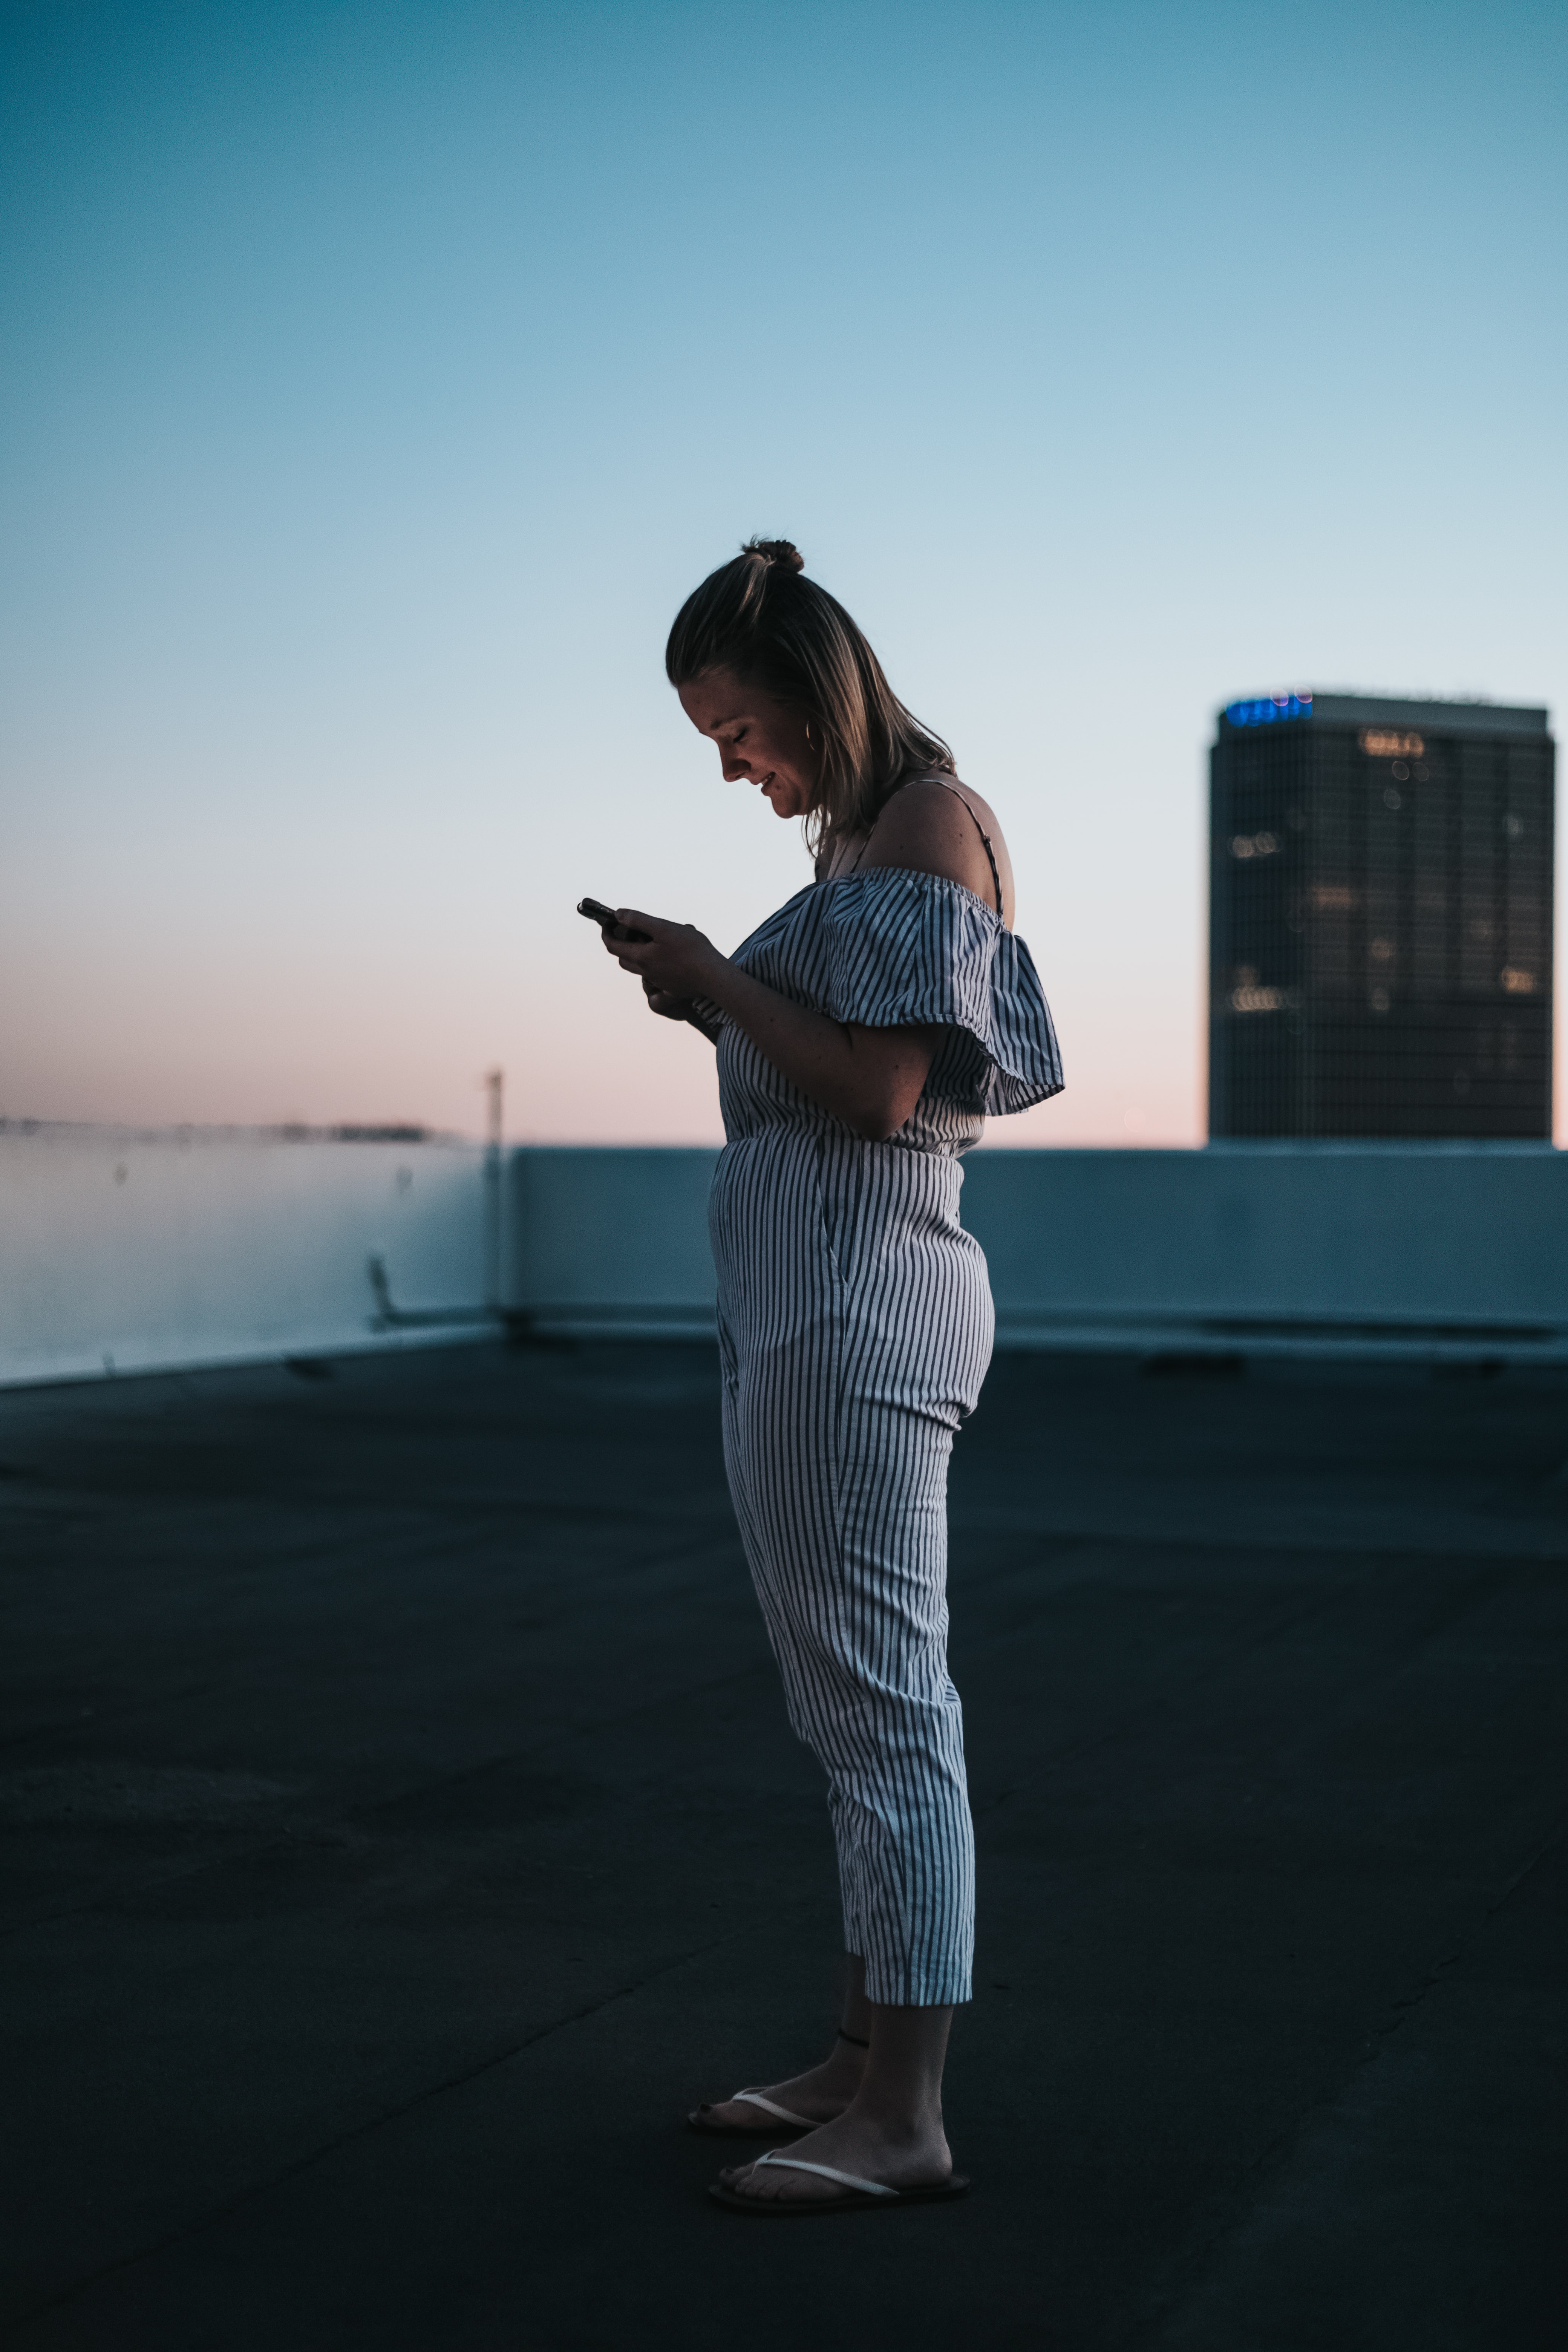 woman standing on rooftop smiling white using smartphone